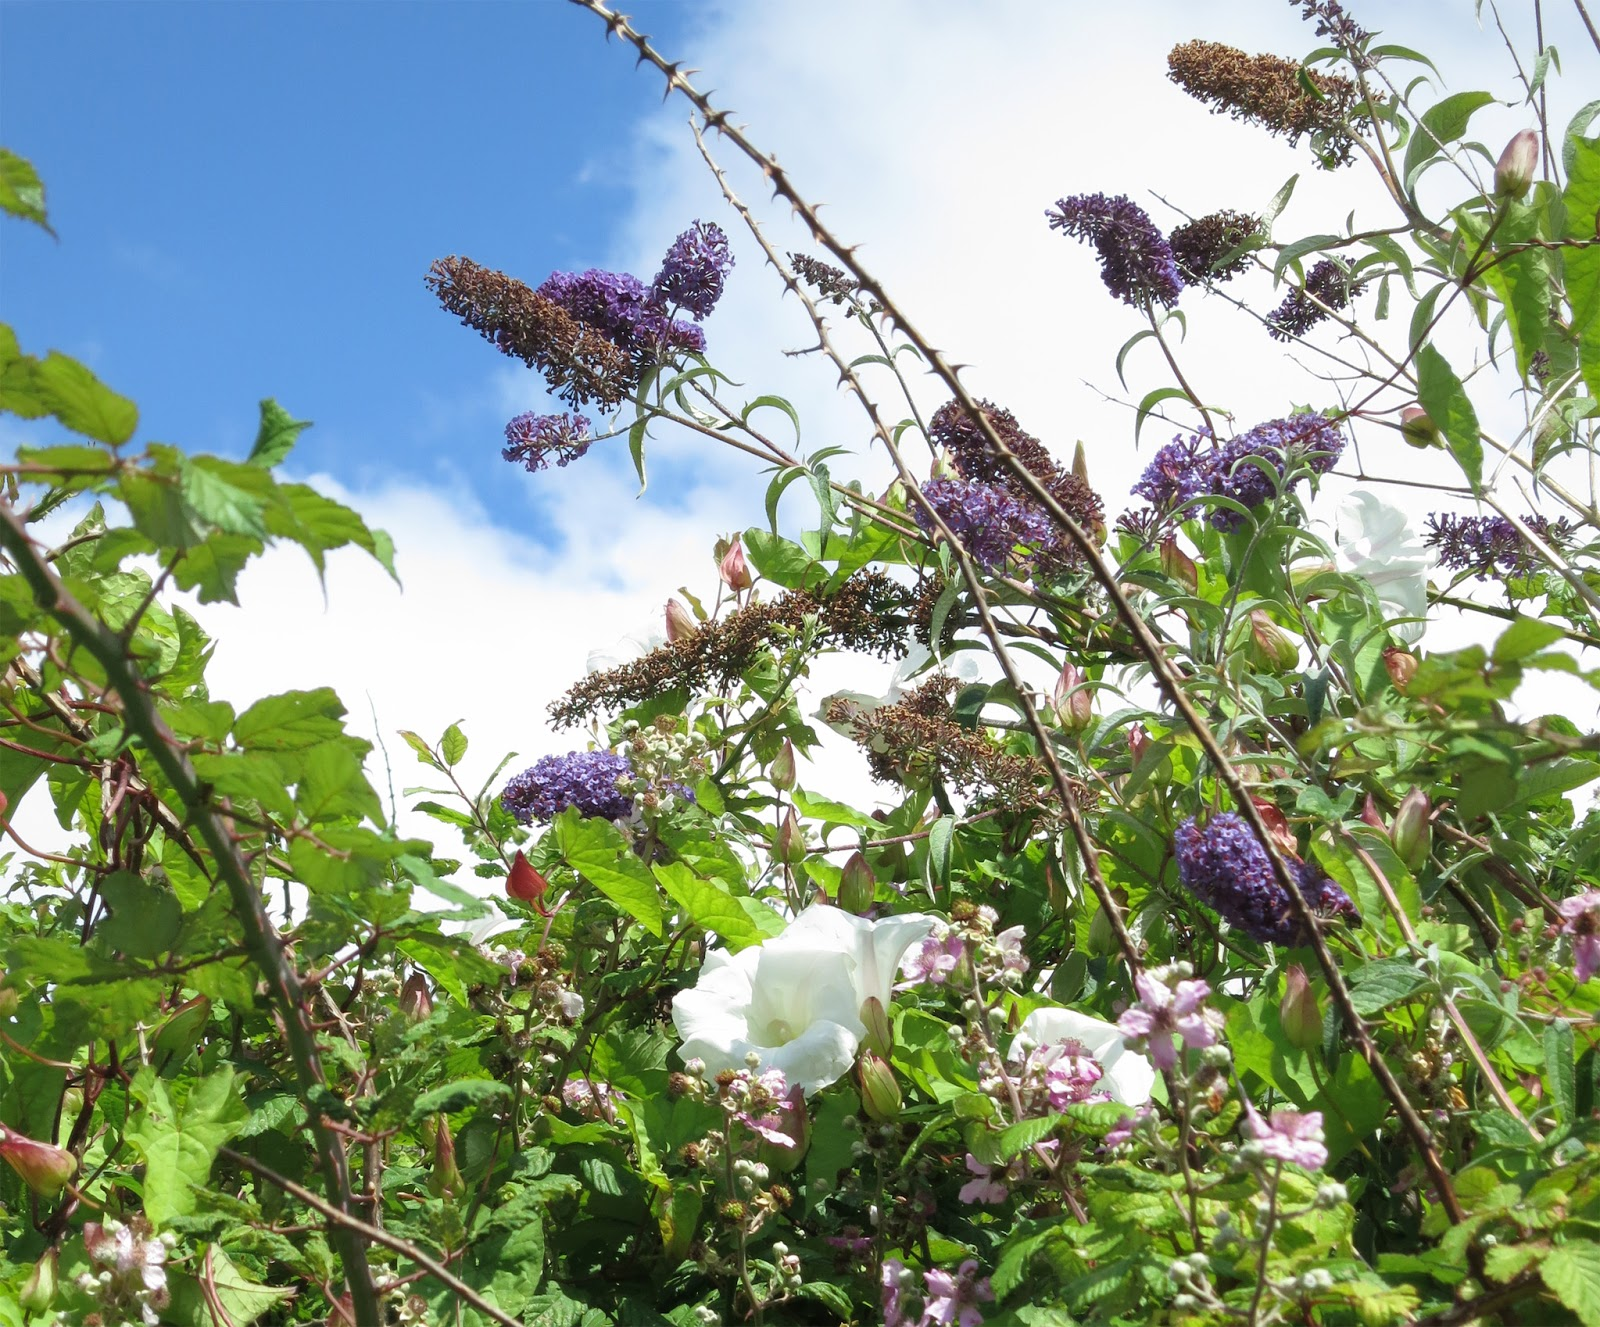 Purple buddleia flowers and white bindweed flowers with bramble stems and blue sky